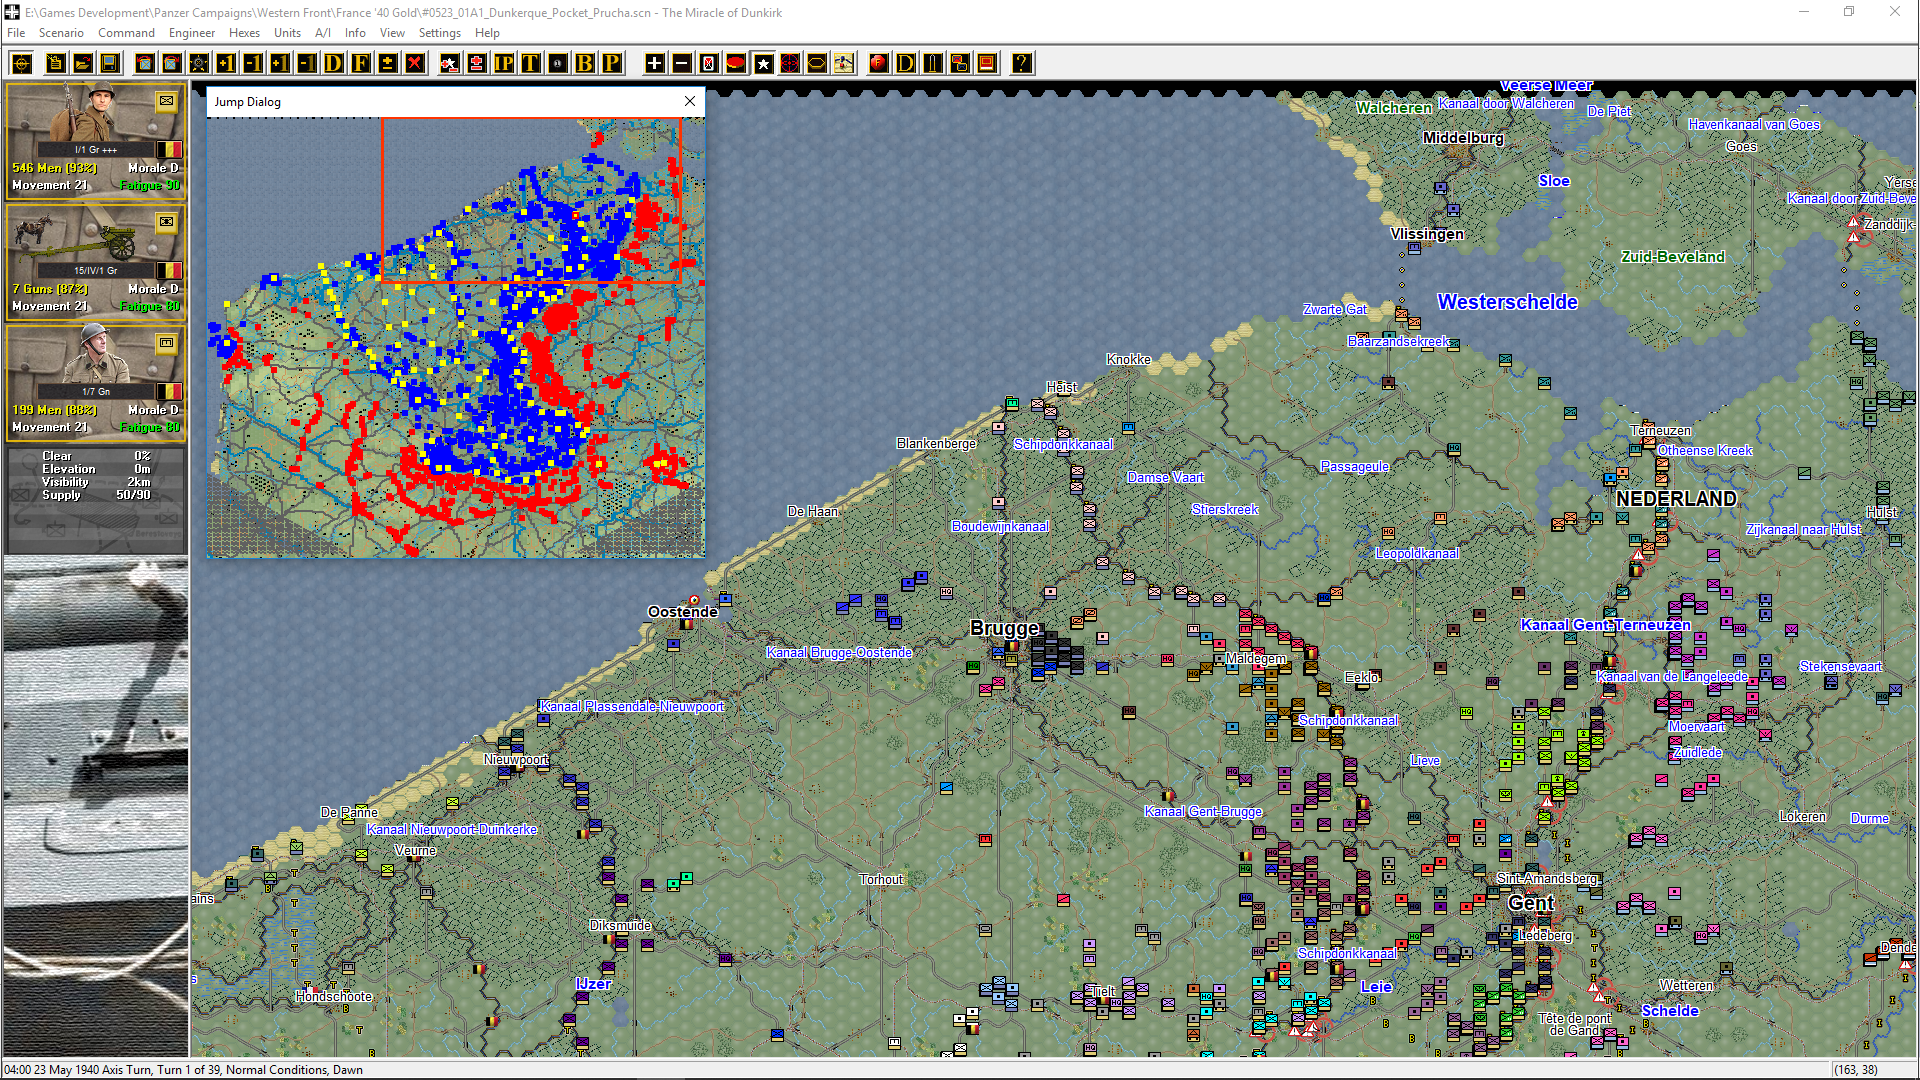 IMAGE(http://www.johntillersoftware.com/PanzerCampaigns/France40/f40_ss10.png)